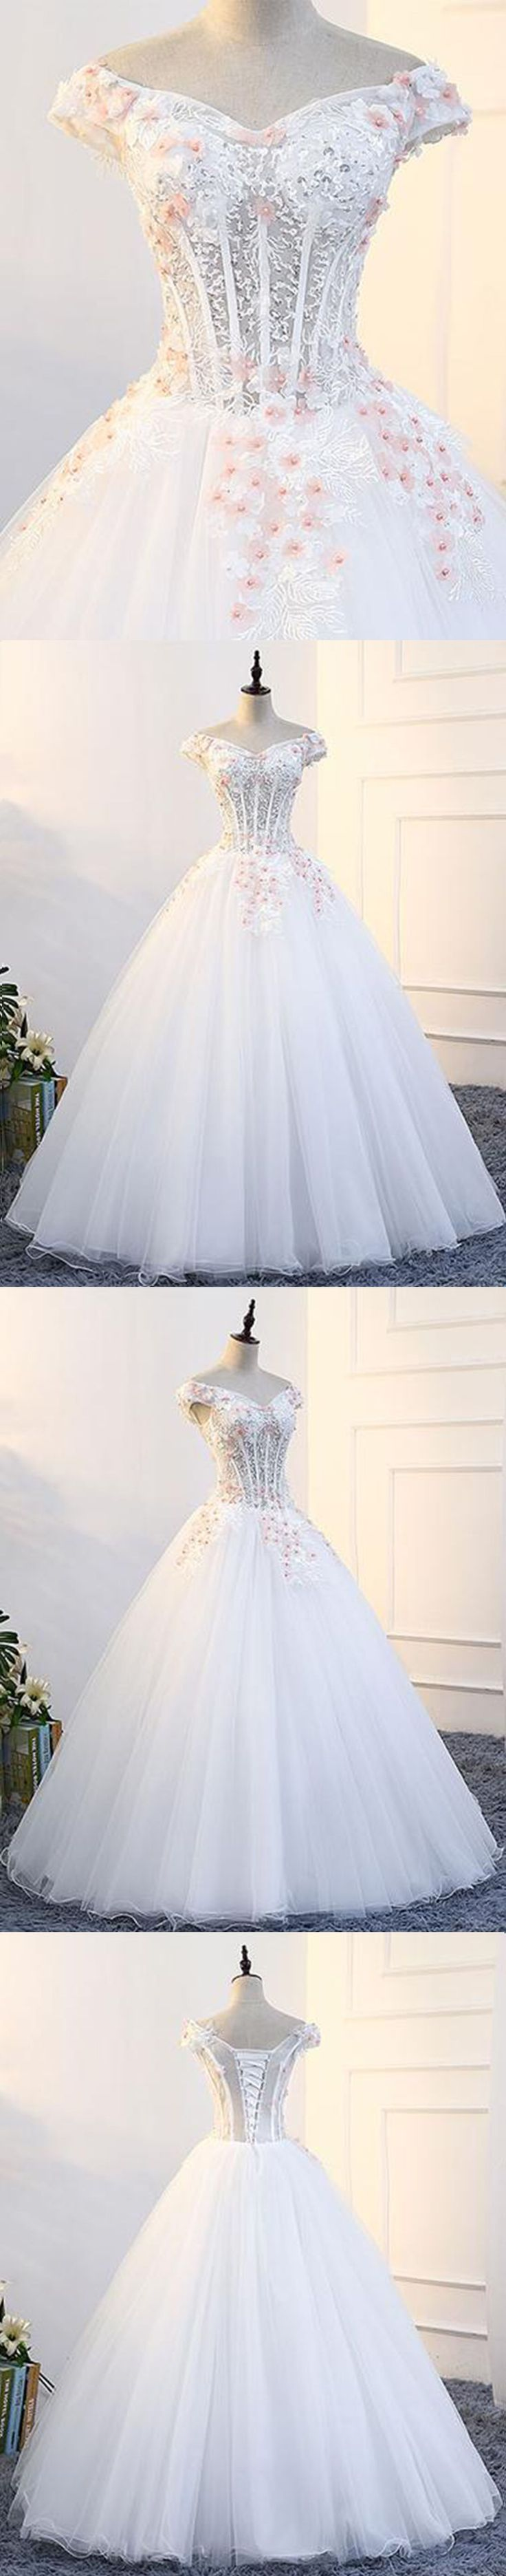 2018 New Evening Gowns | White tulle off shoulder prom gown wedding dress with cap sleeves #promdresses #weddingdresses #weddings